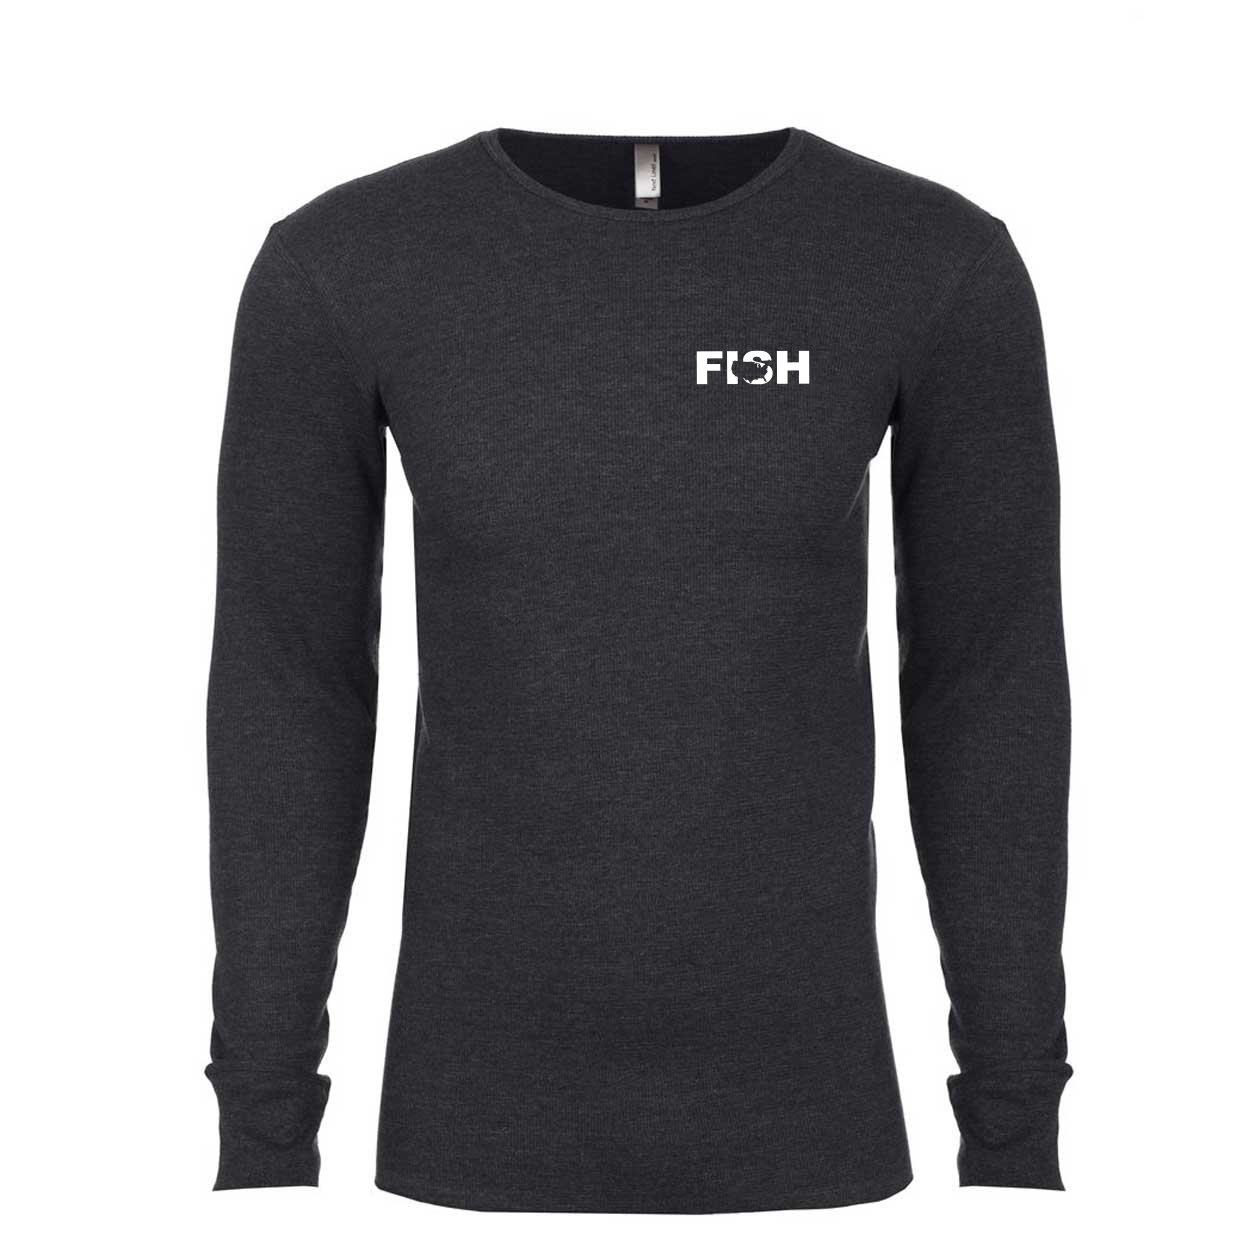 Fish United States Long Sleeve Thermal Shirt Heather Charcoal (White Logo)